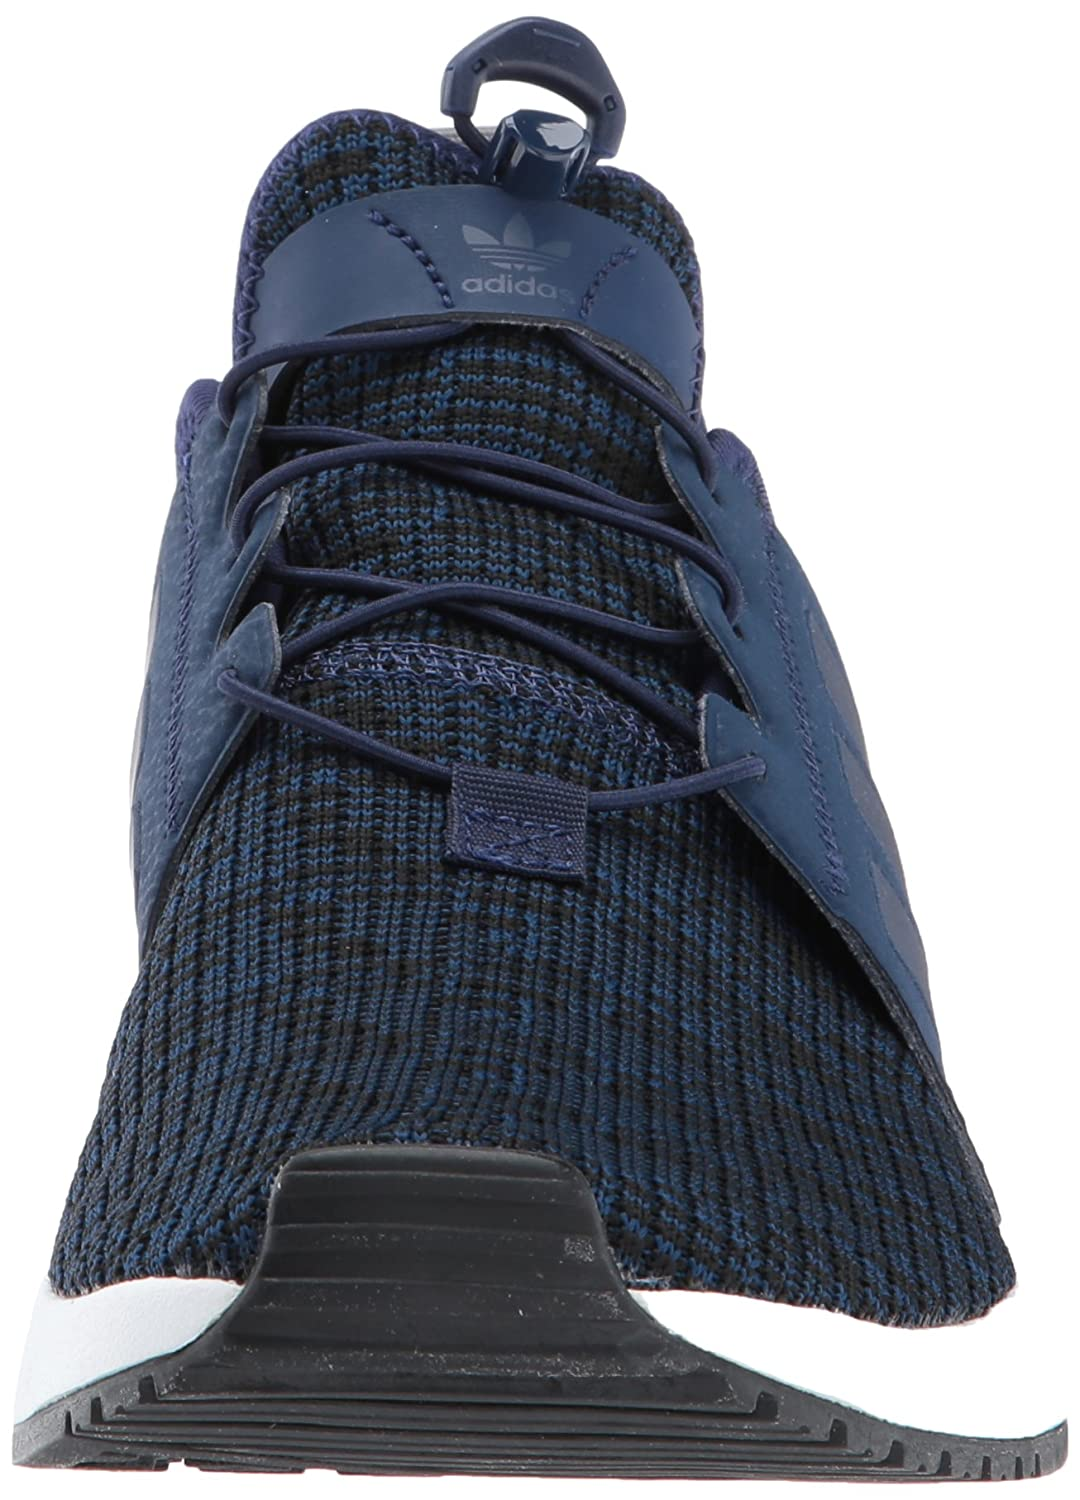 adidas Originals Men's X_PLR Sneakers, Lightweight, Comfortable and and Comfortable Stylish with Speed Lacing System for Quick On-Off Wear B01MSYVVNE Running 38f923